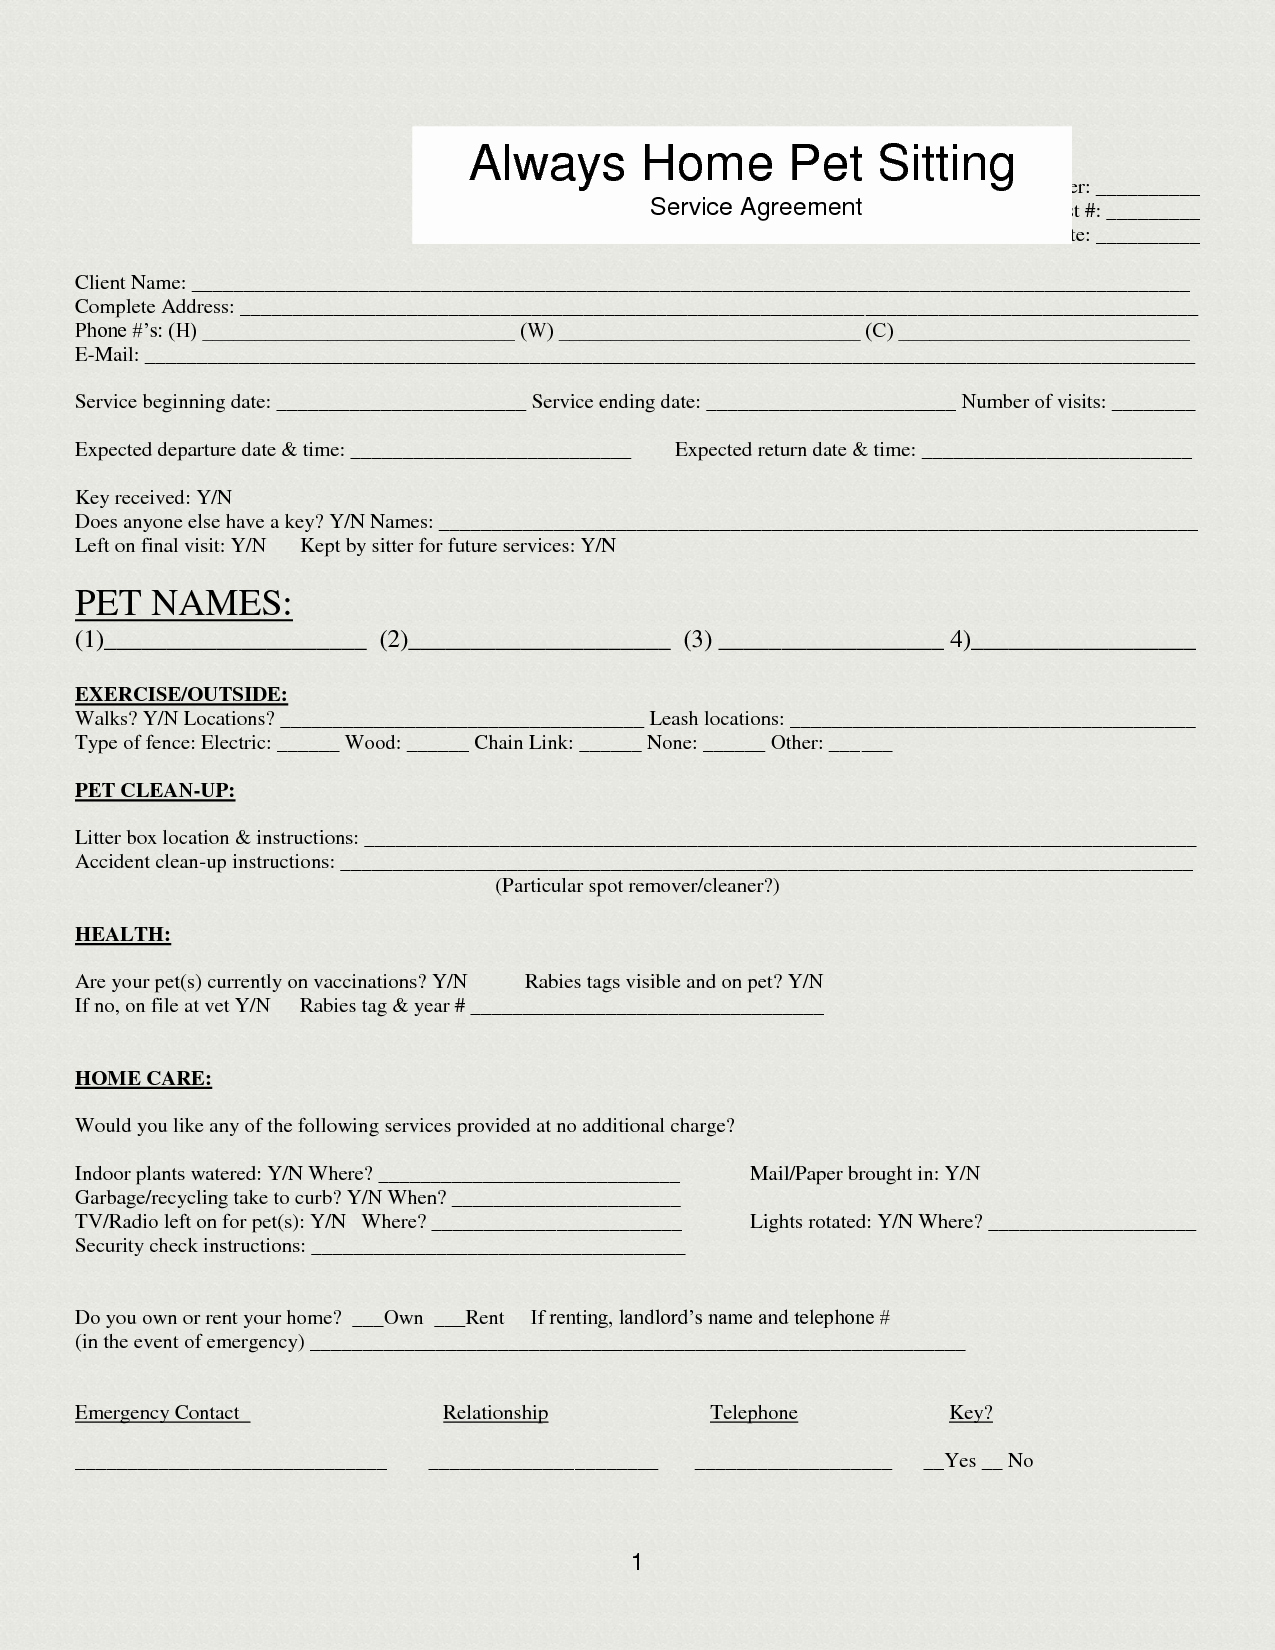 Dog Training Contract Template Elegant Pet Sitting Template Google Search